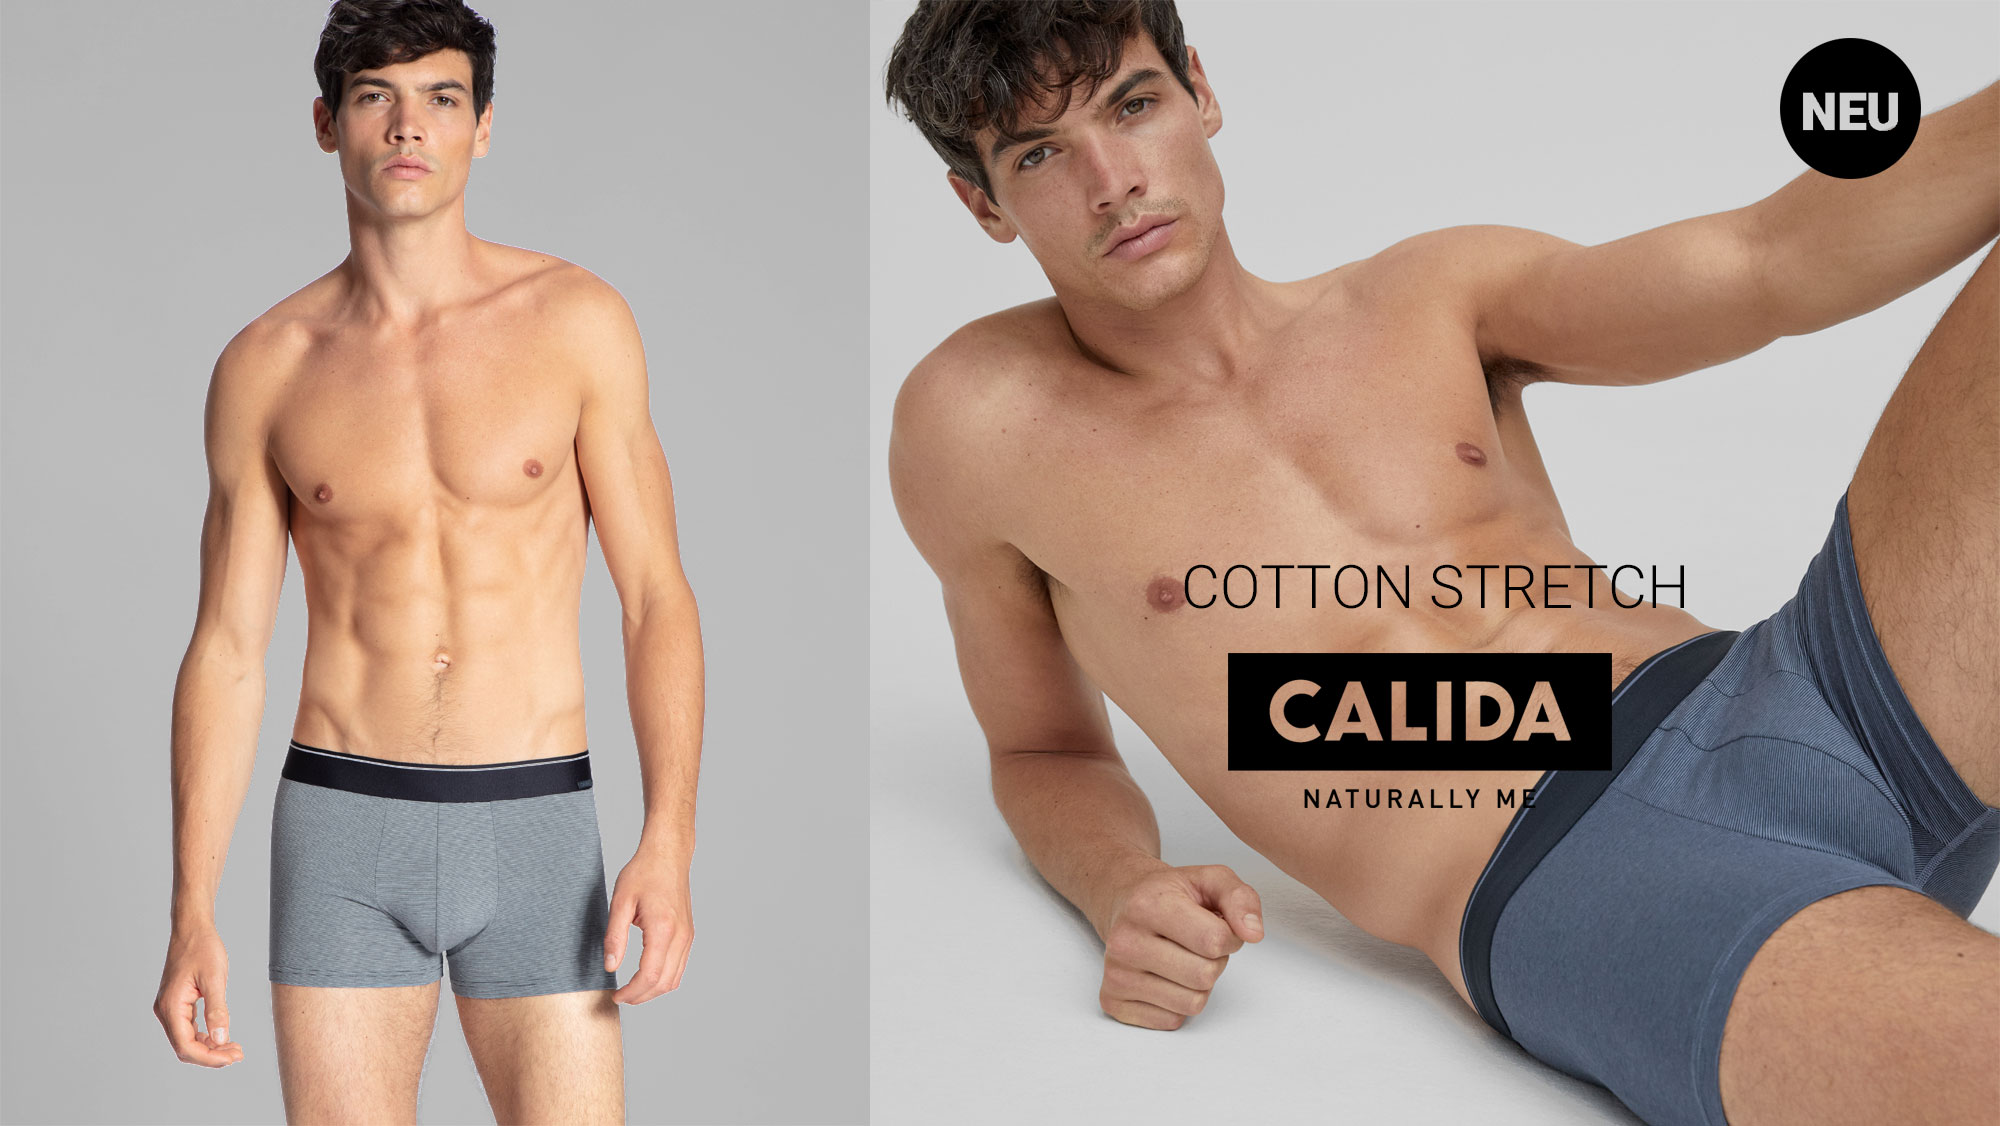 Calida Cotton Stretch